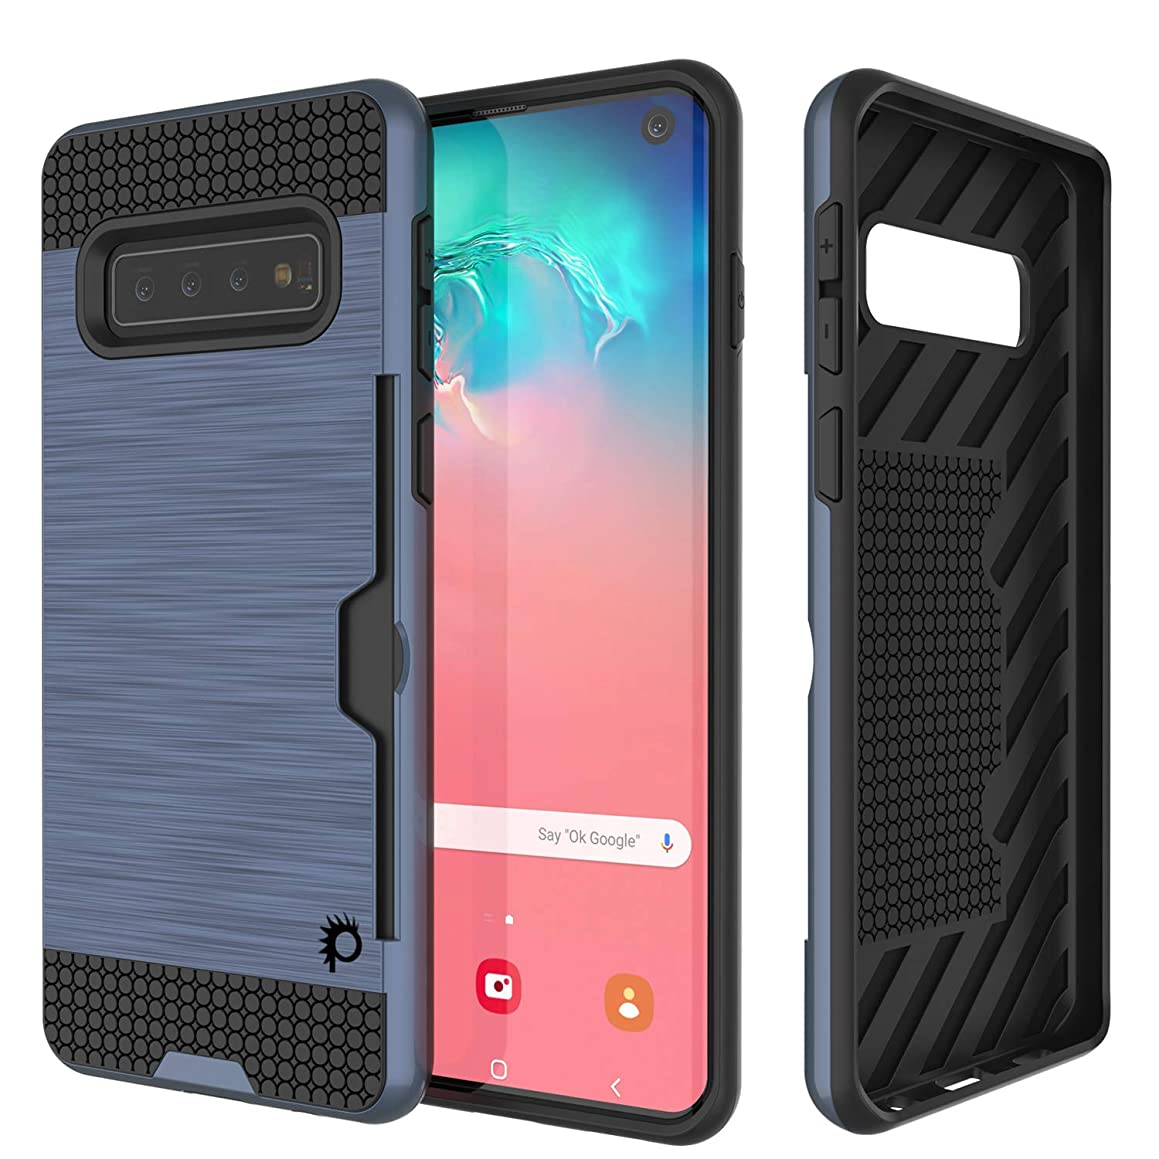 PunkCase S10 Case [Slot Series] [Slim Fit] Dual-Layer Armor Cover w/Integrated Anti-Shock System, Credit Card Slot & PUNKSHIELD Screen Protector Compatible W/Samsung Galaxy S10 [Navy]